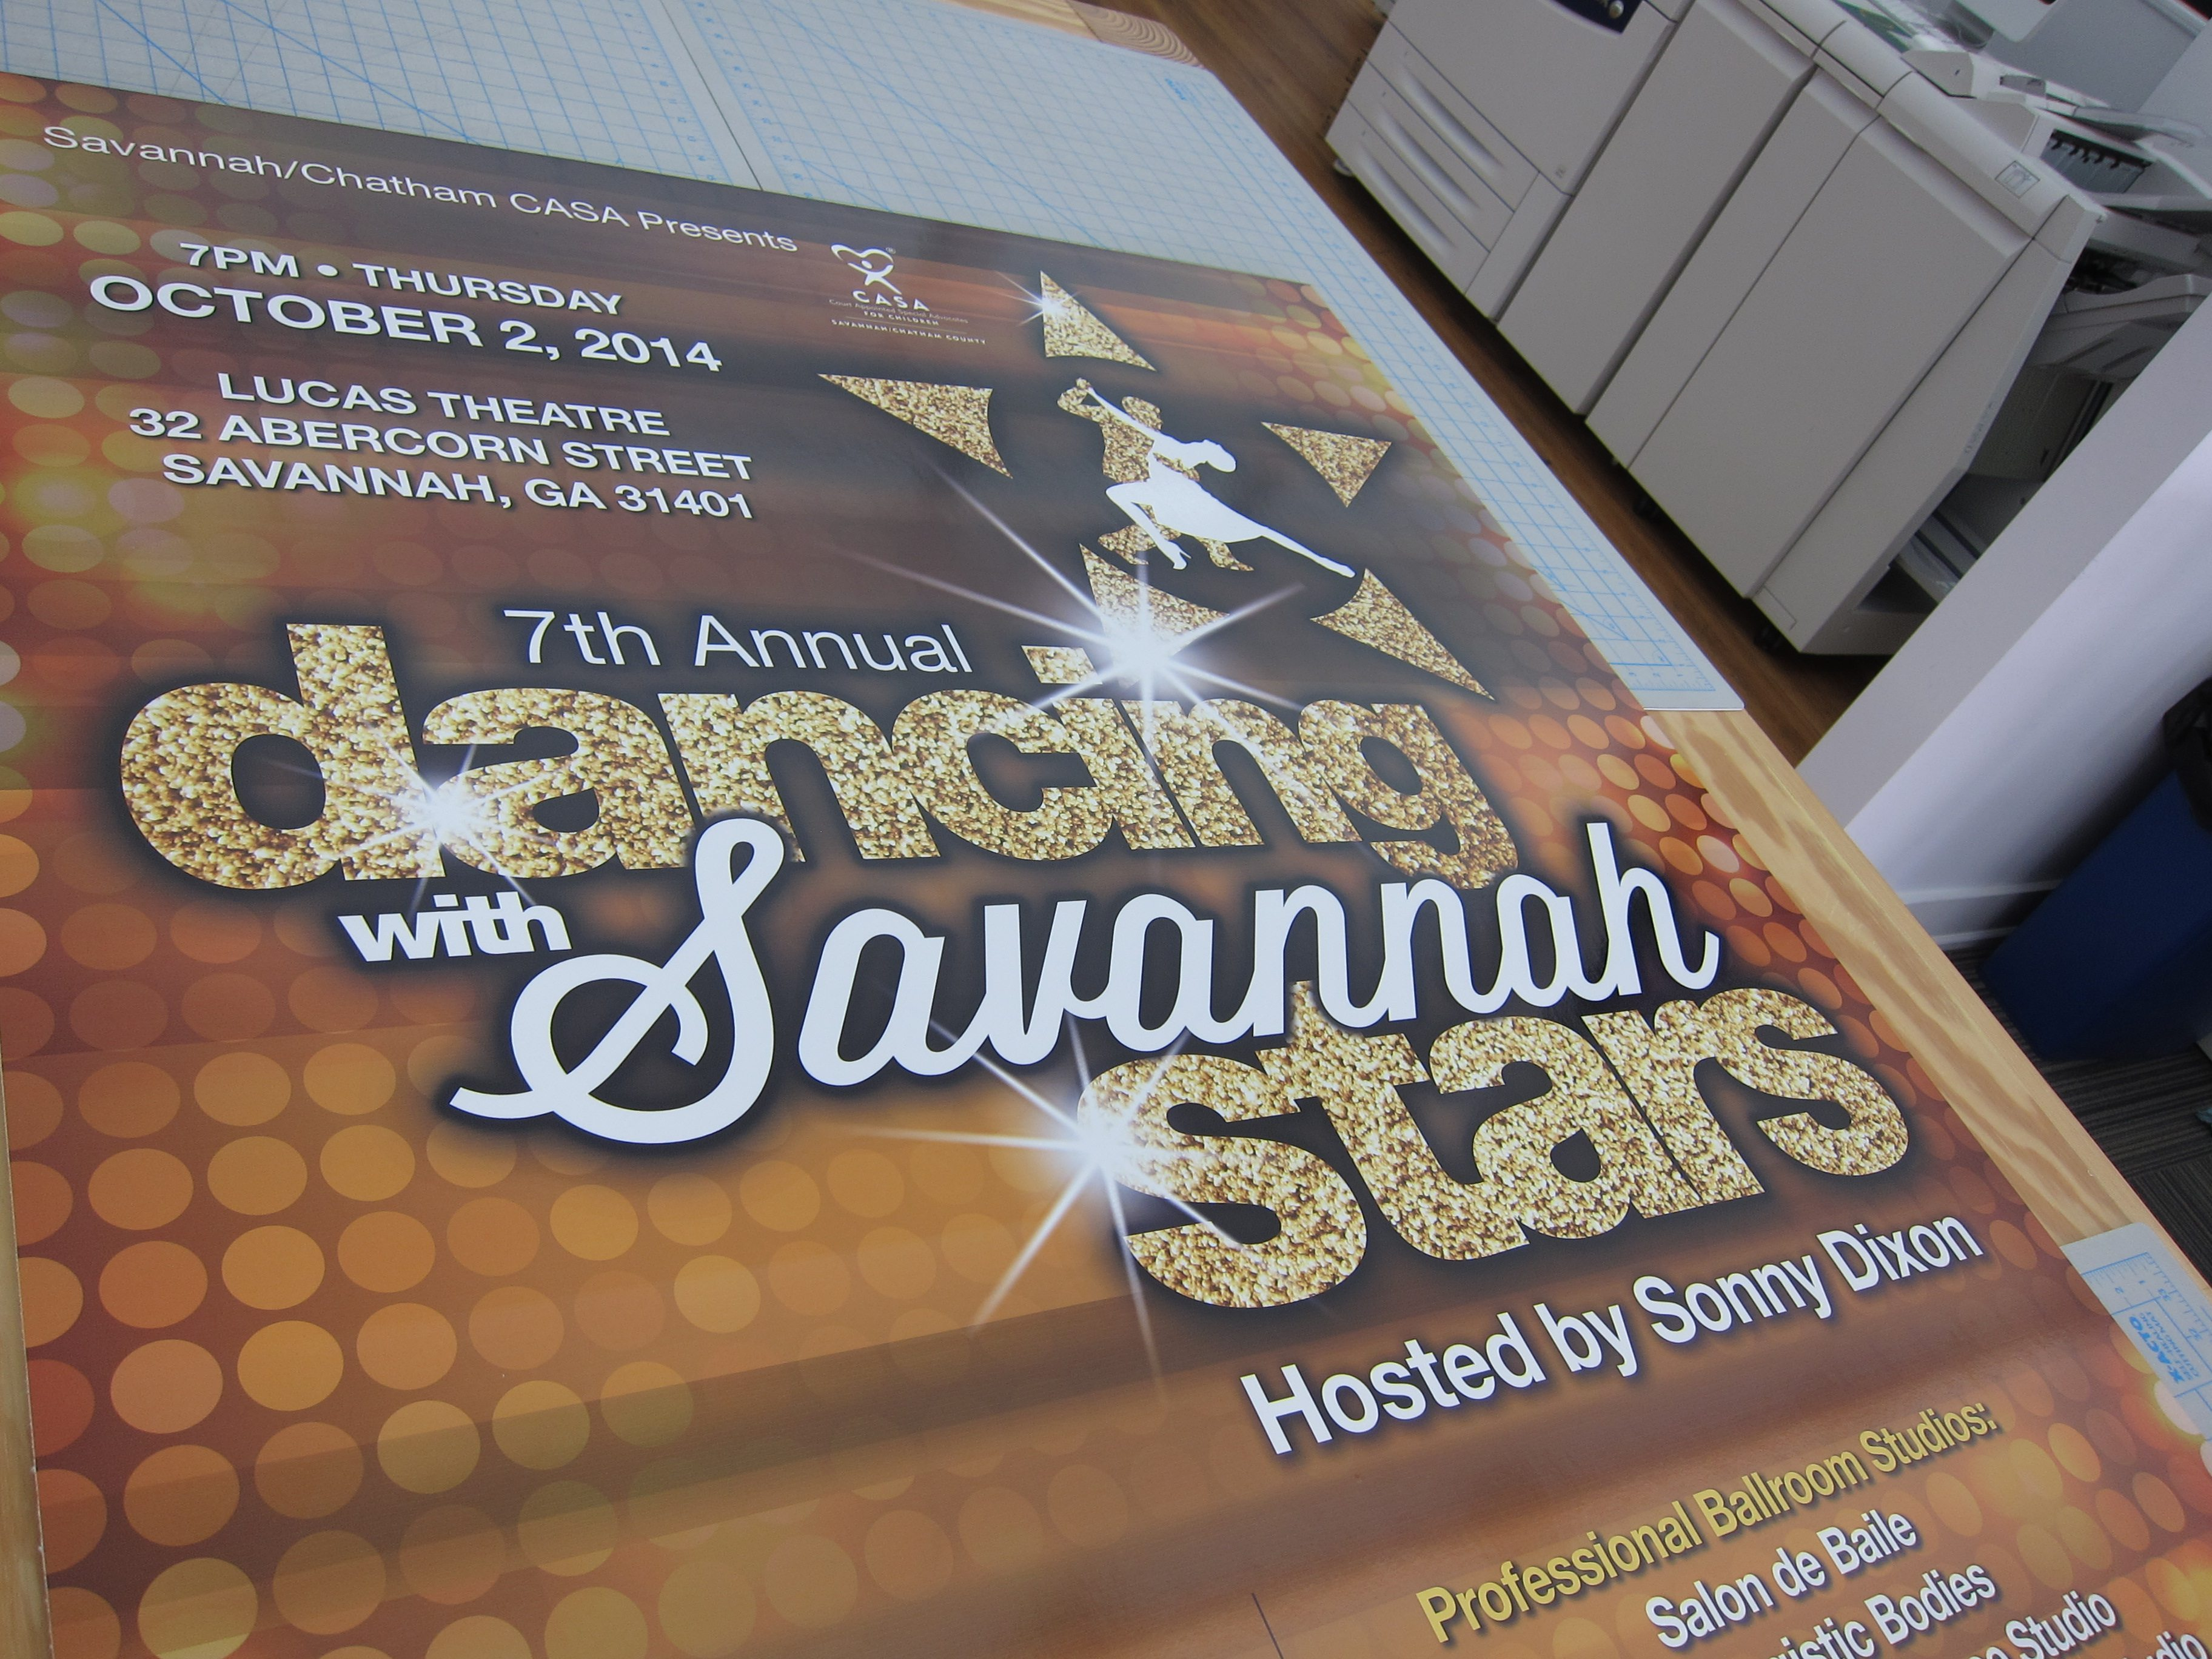 Posters | Dancing with Savannah Stars